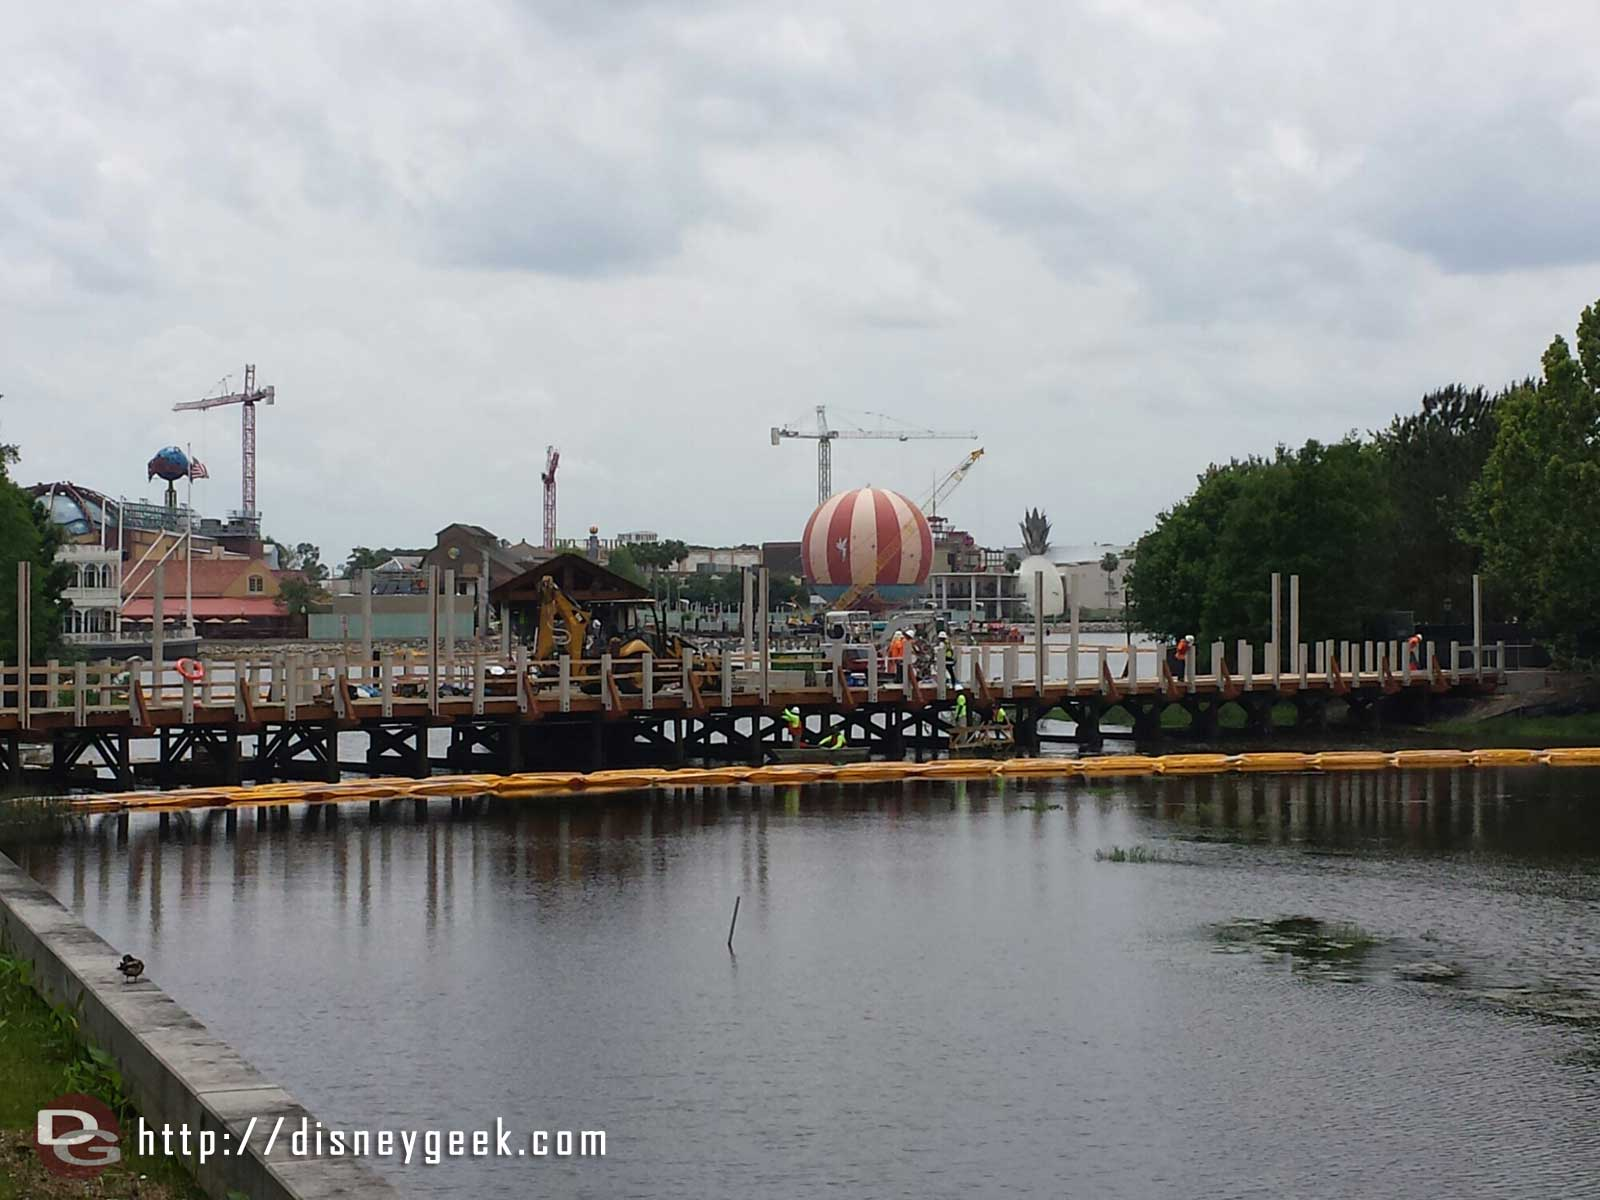 The new walkway/bridge from Saratoga Springs to Downtown Disney is taking shape